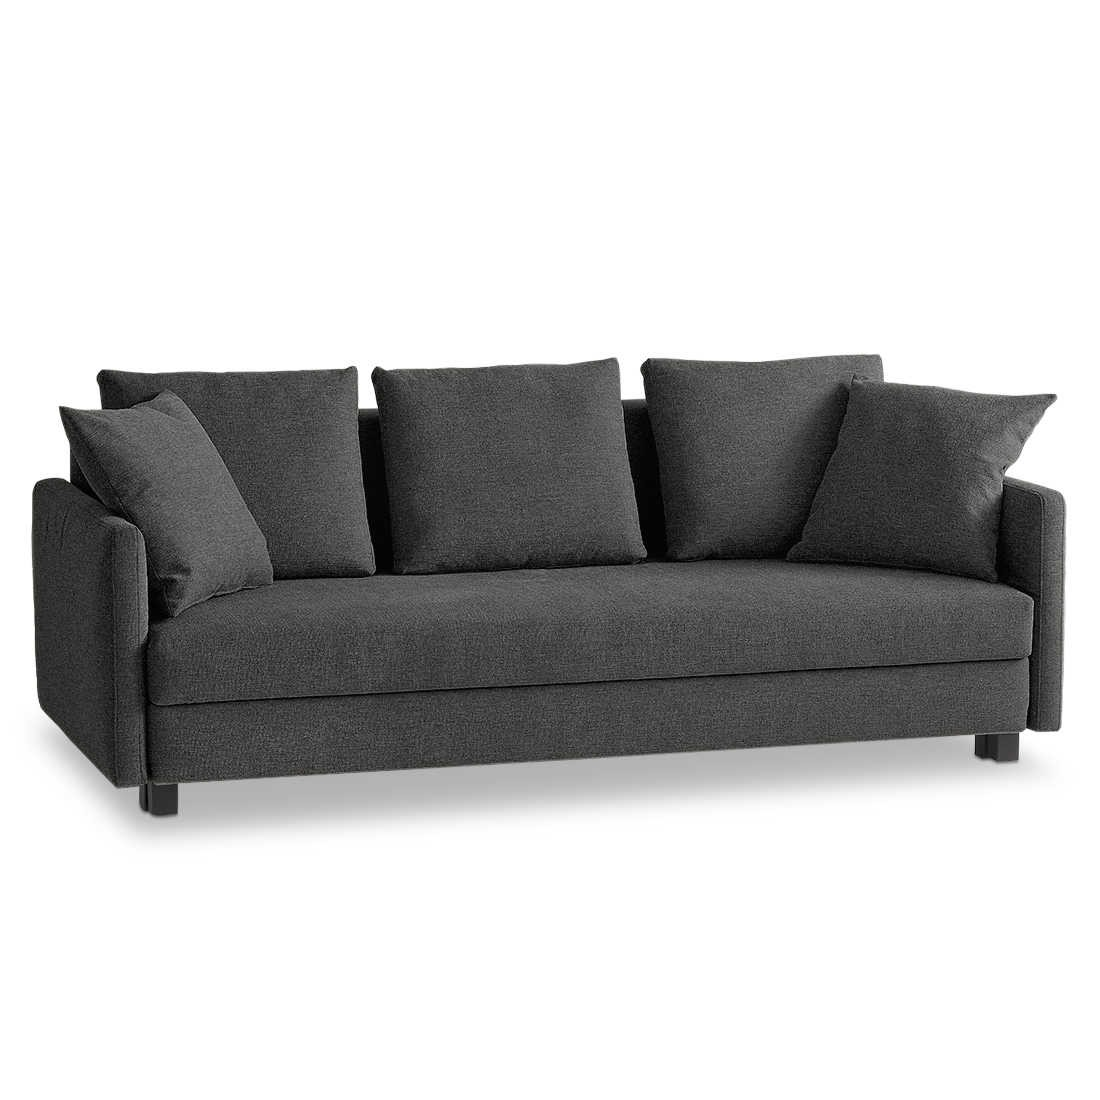 franz fertig schlafsofa jester grau stoff online kaufen. Black Bedroom Furniture Sets. Home Design Ideas